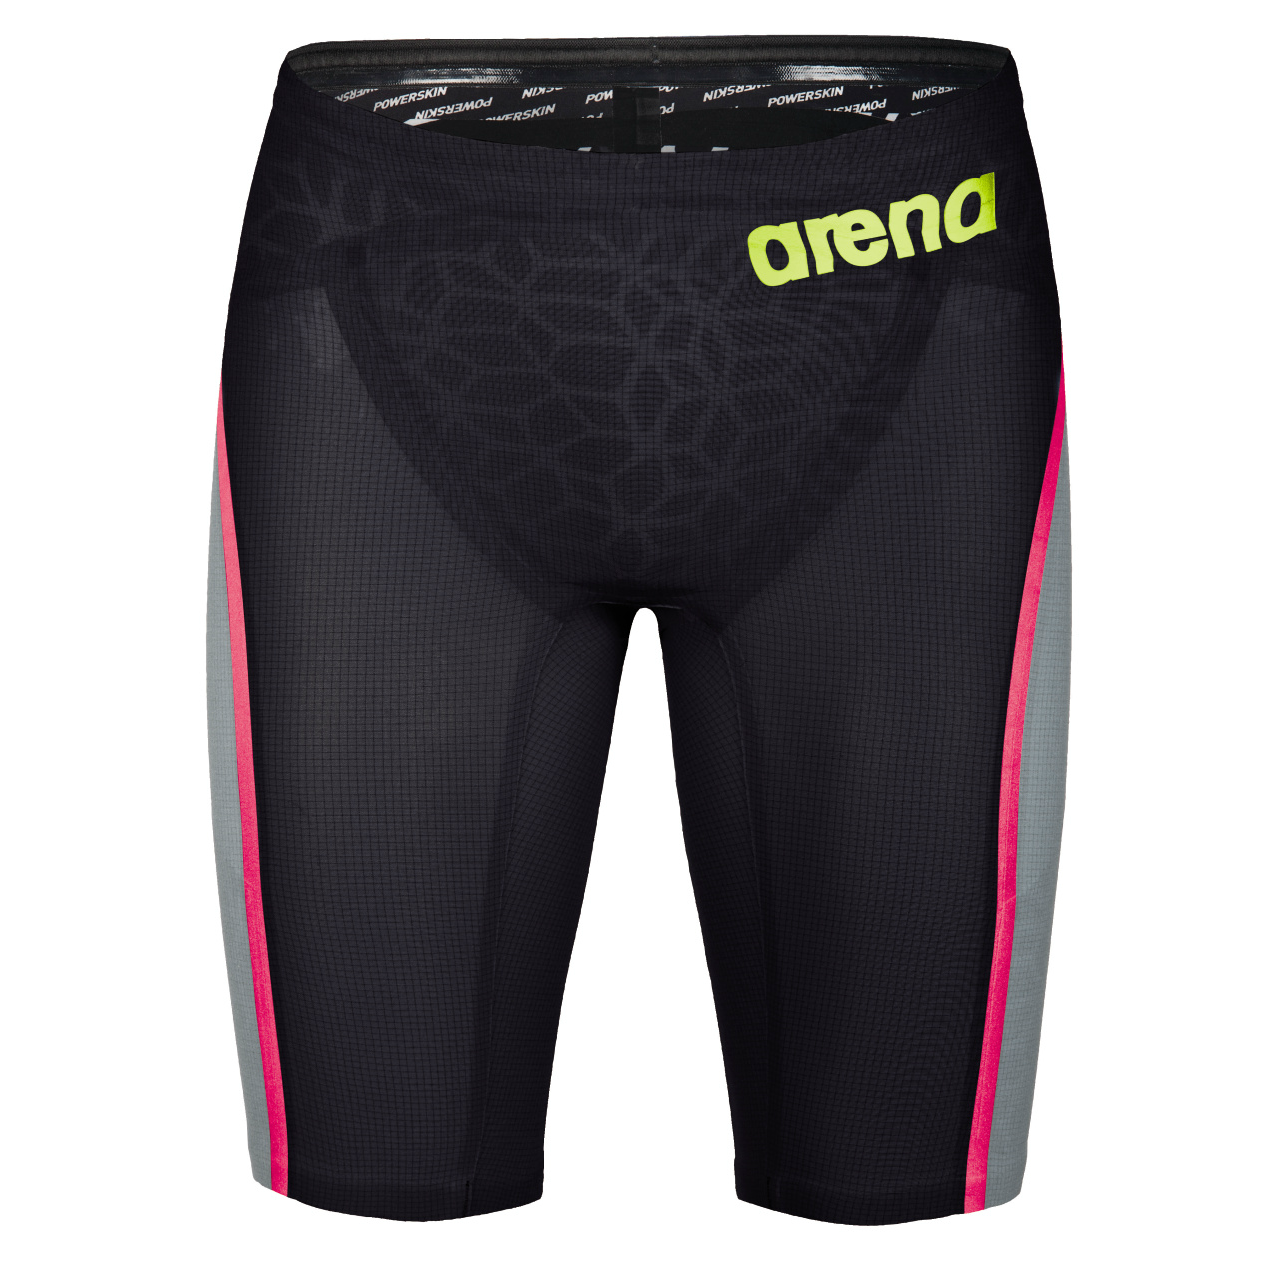 Arena carbon ultra jammer dark grey